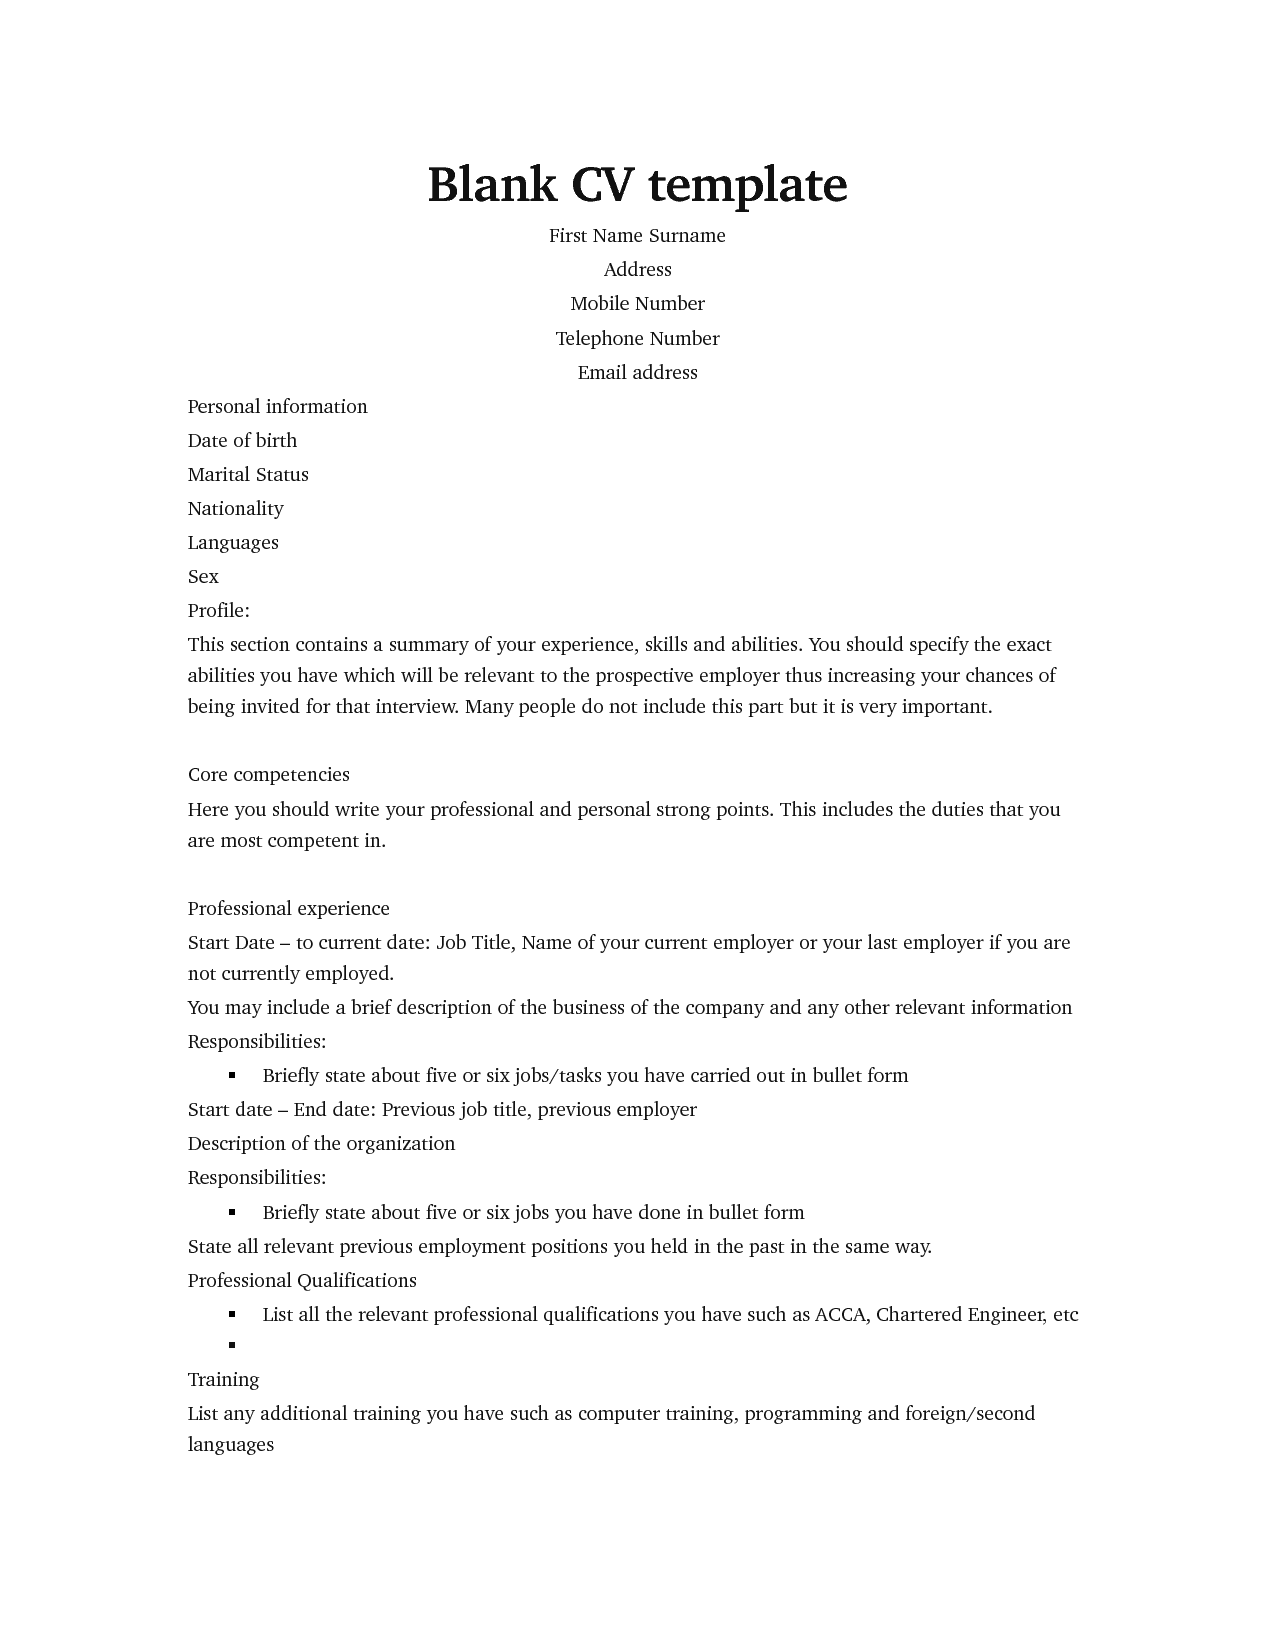 Graduate cv tips and cv template uk example for students cv template for graduates yelopaper